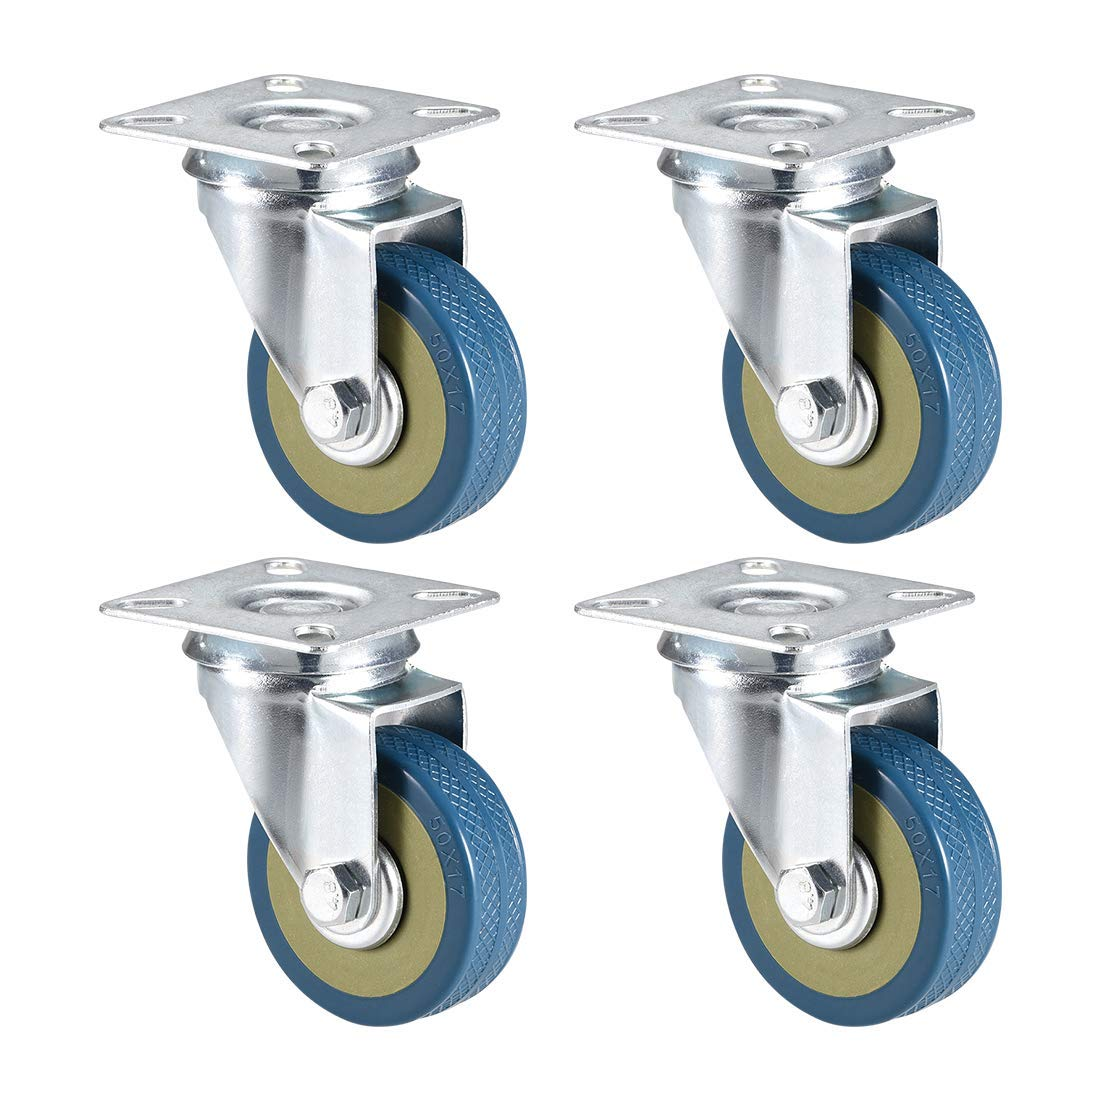 Capacity Swivel castors with 2-inch PVC Wheels Mounted on top Plate 44 lb 4 Pieces